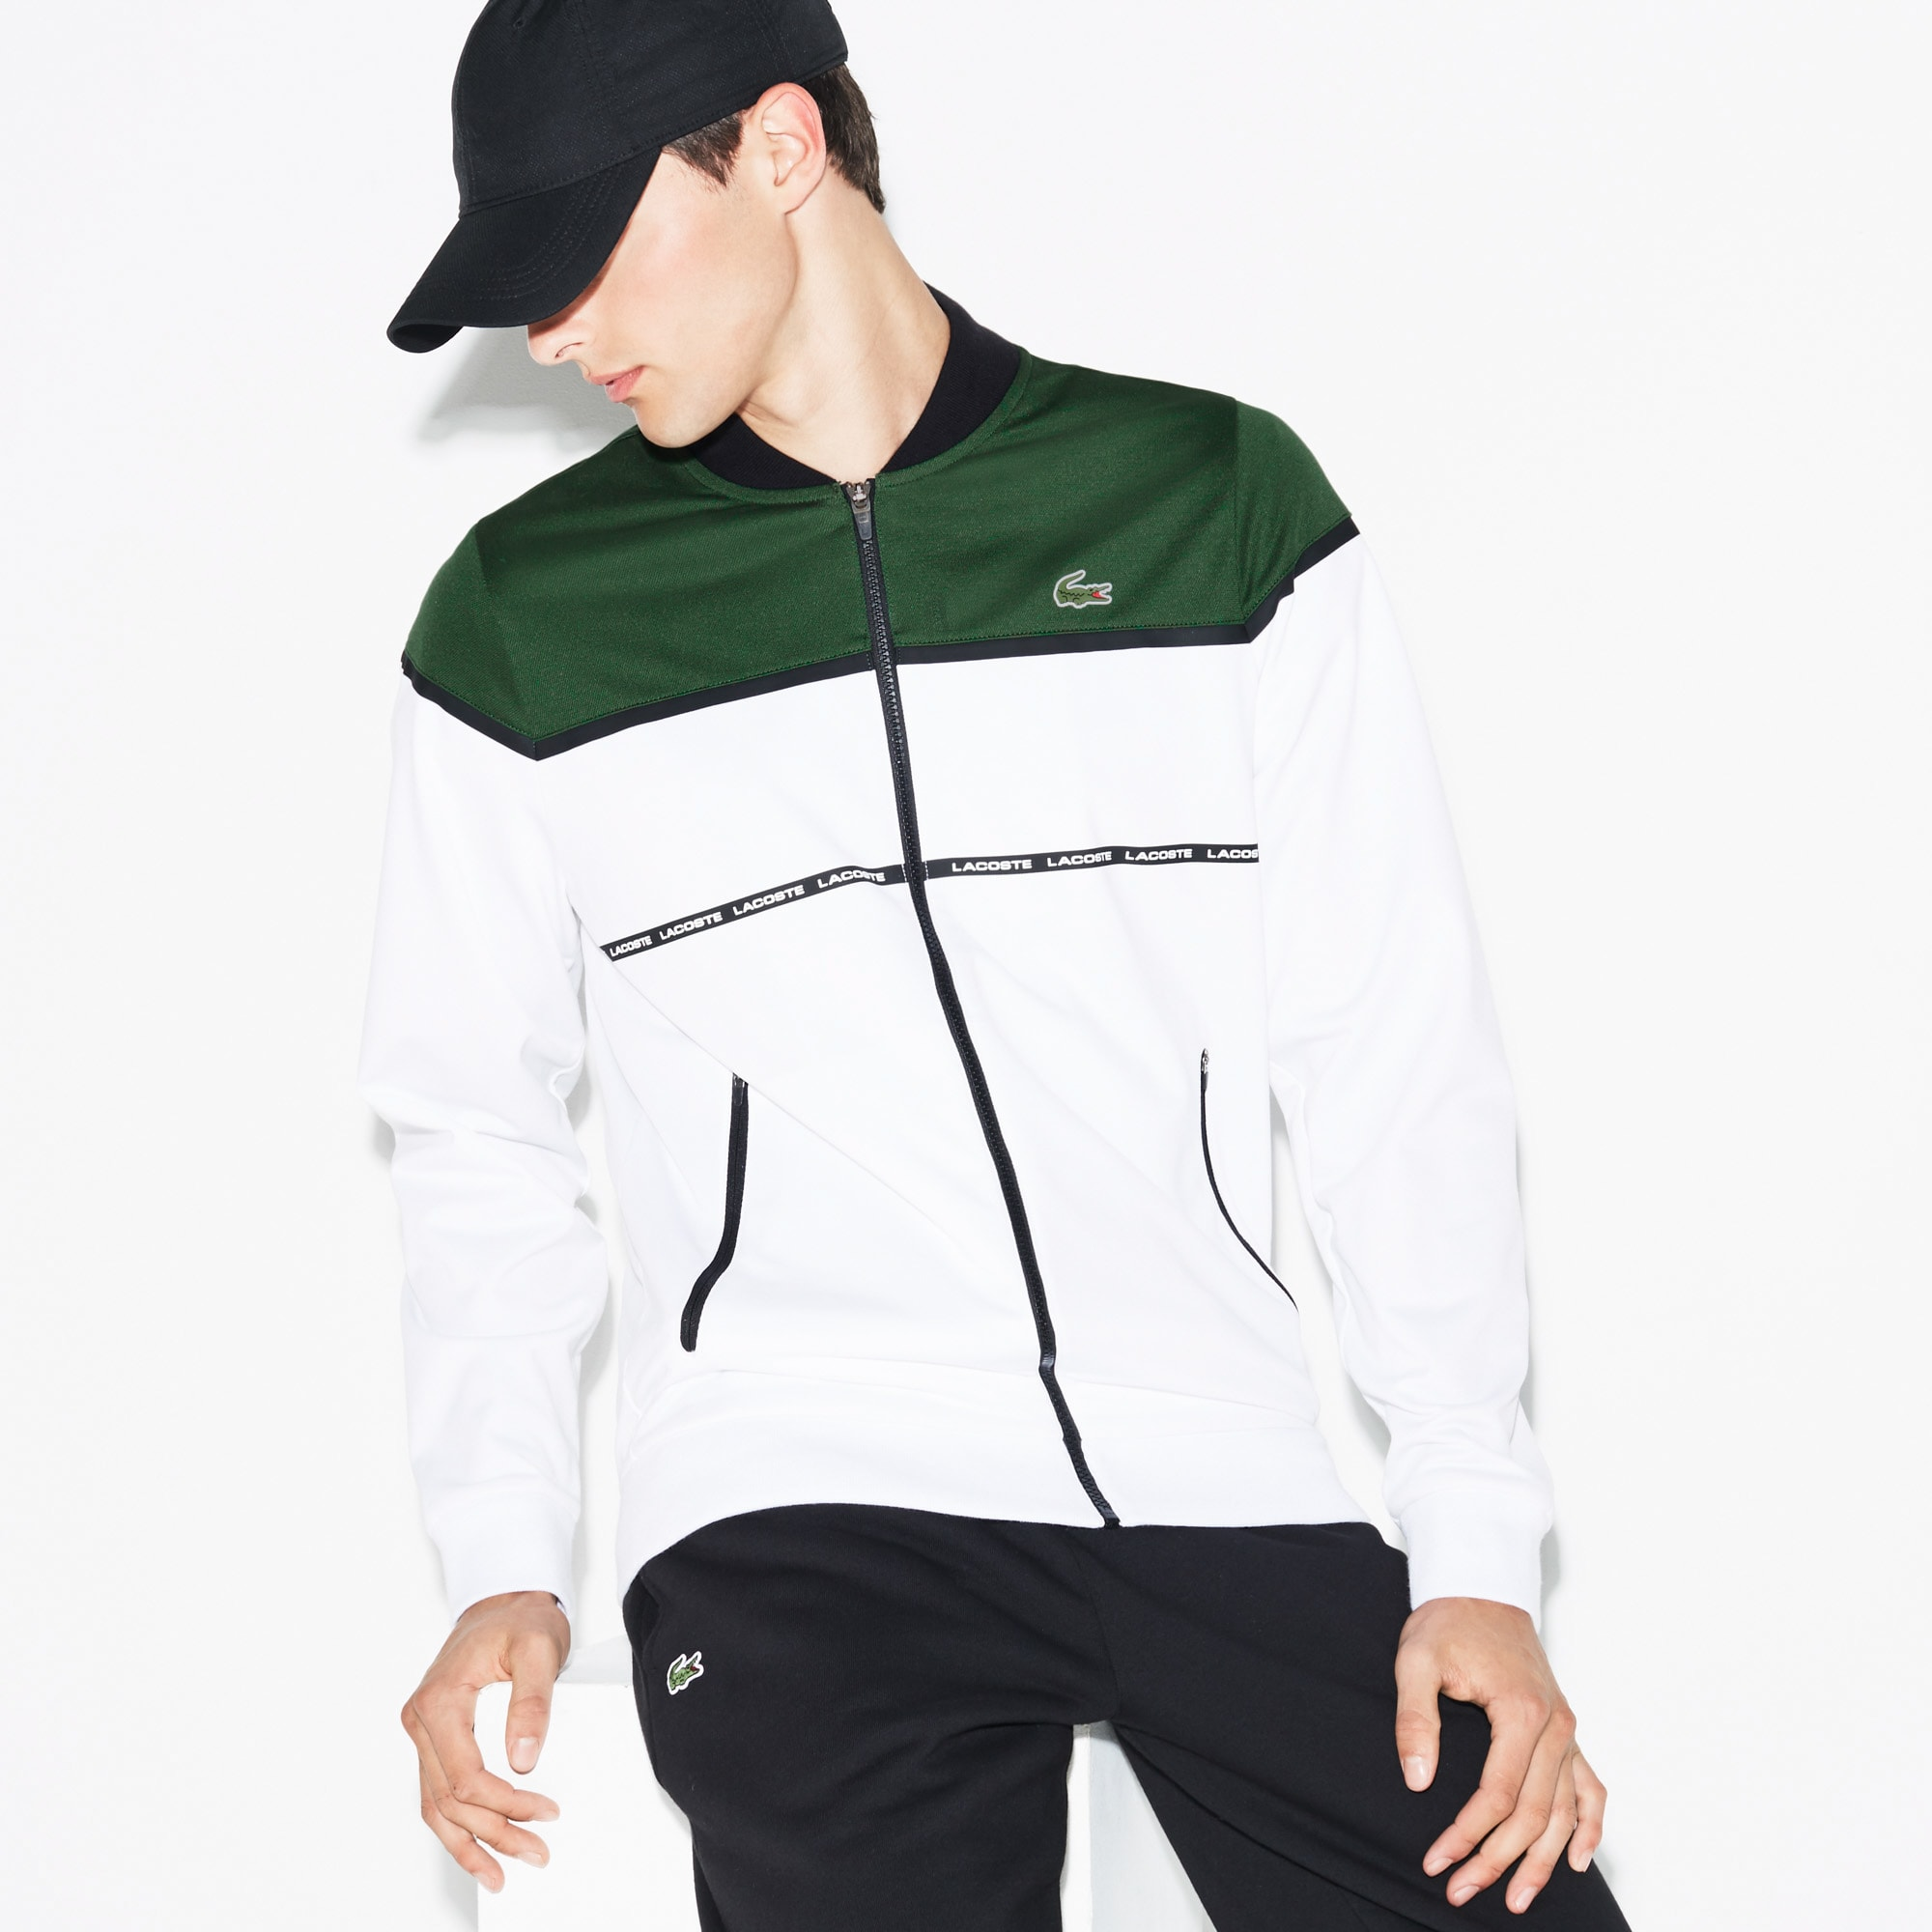 Men's Lacoste SPORT Tennis Colorblock Tech Piqué Zippered Jacket